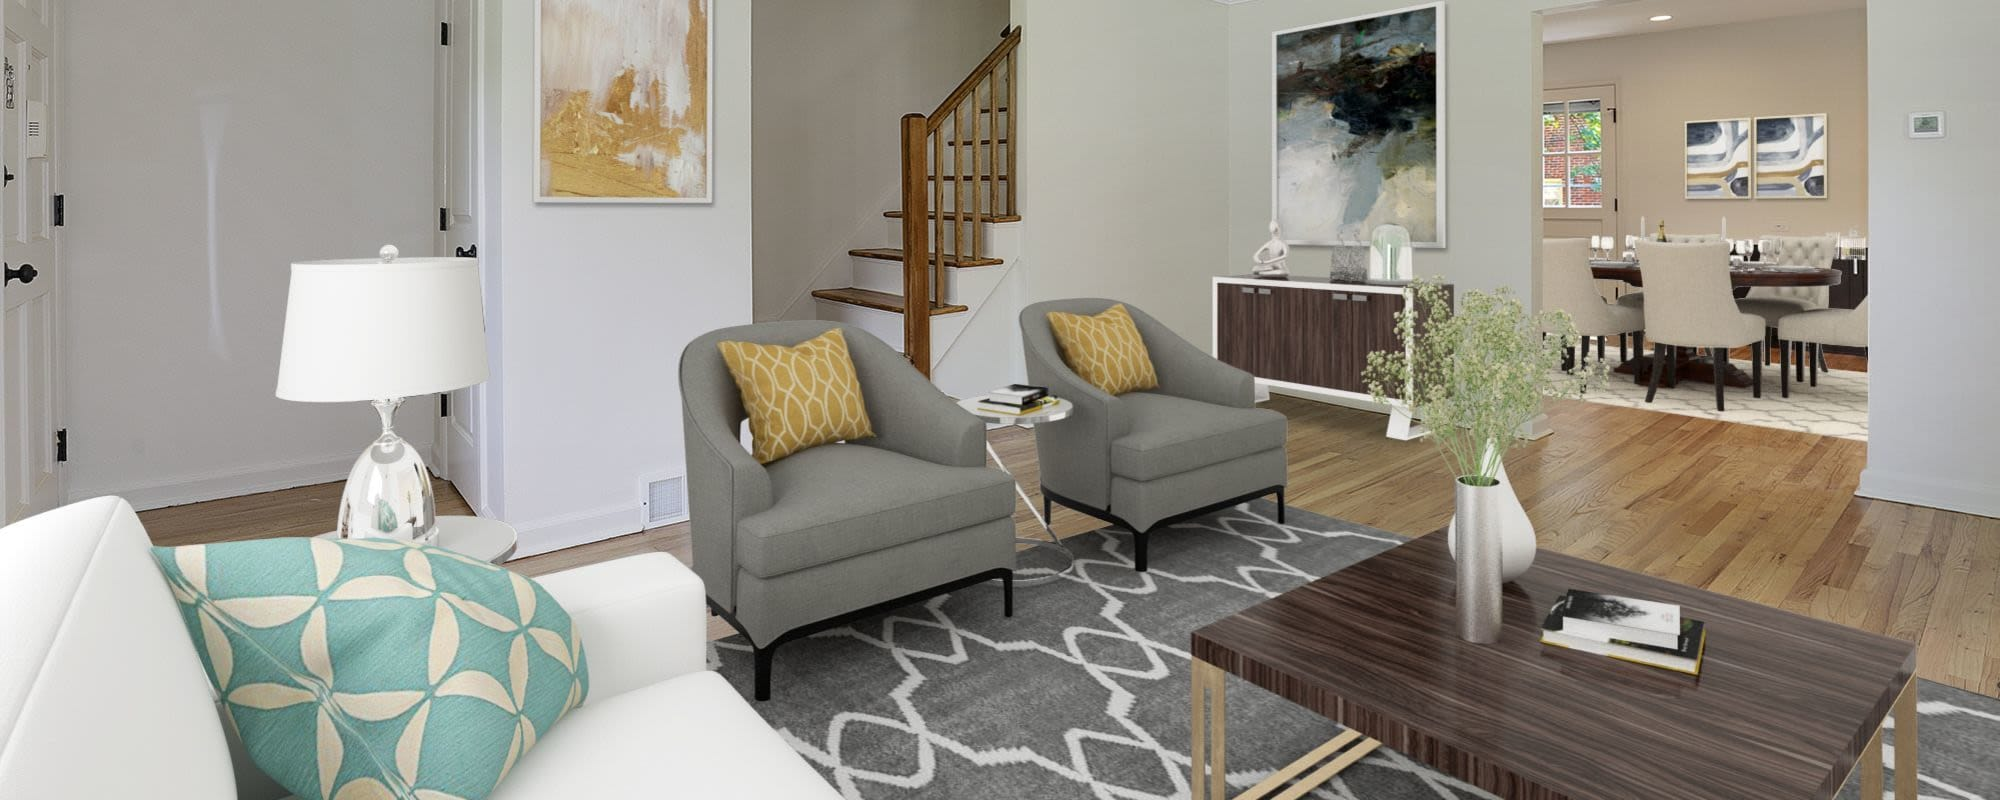 Floor plans at Northfield Townhouses in West Orange, New Jersey